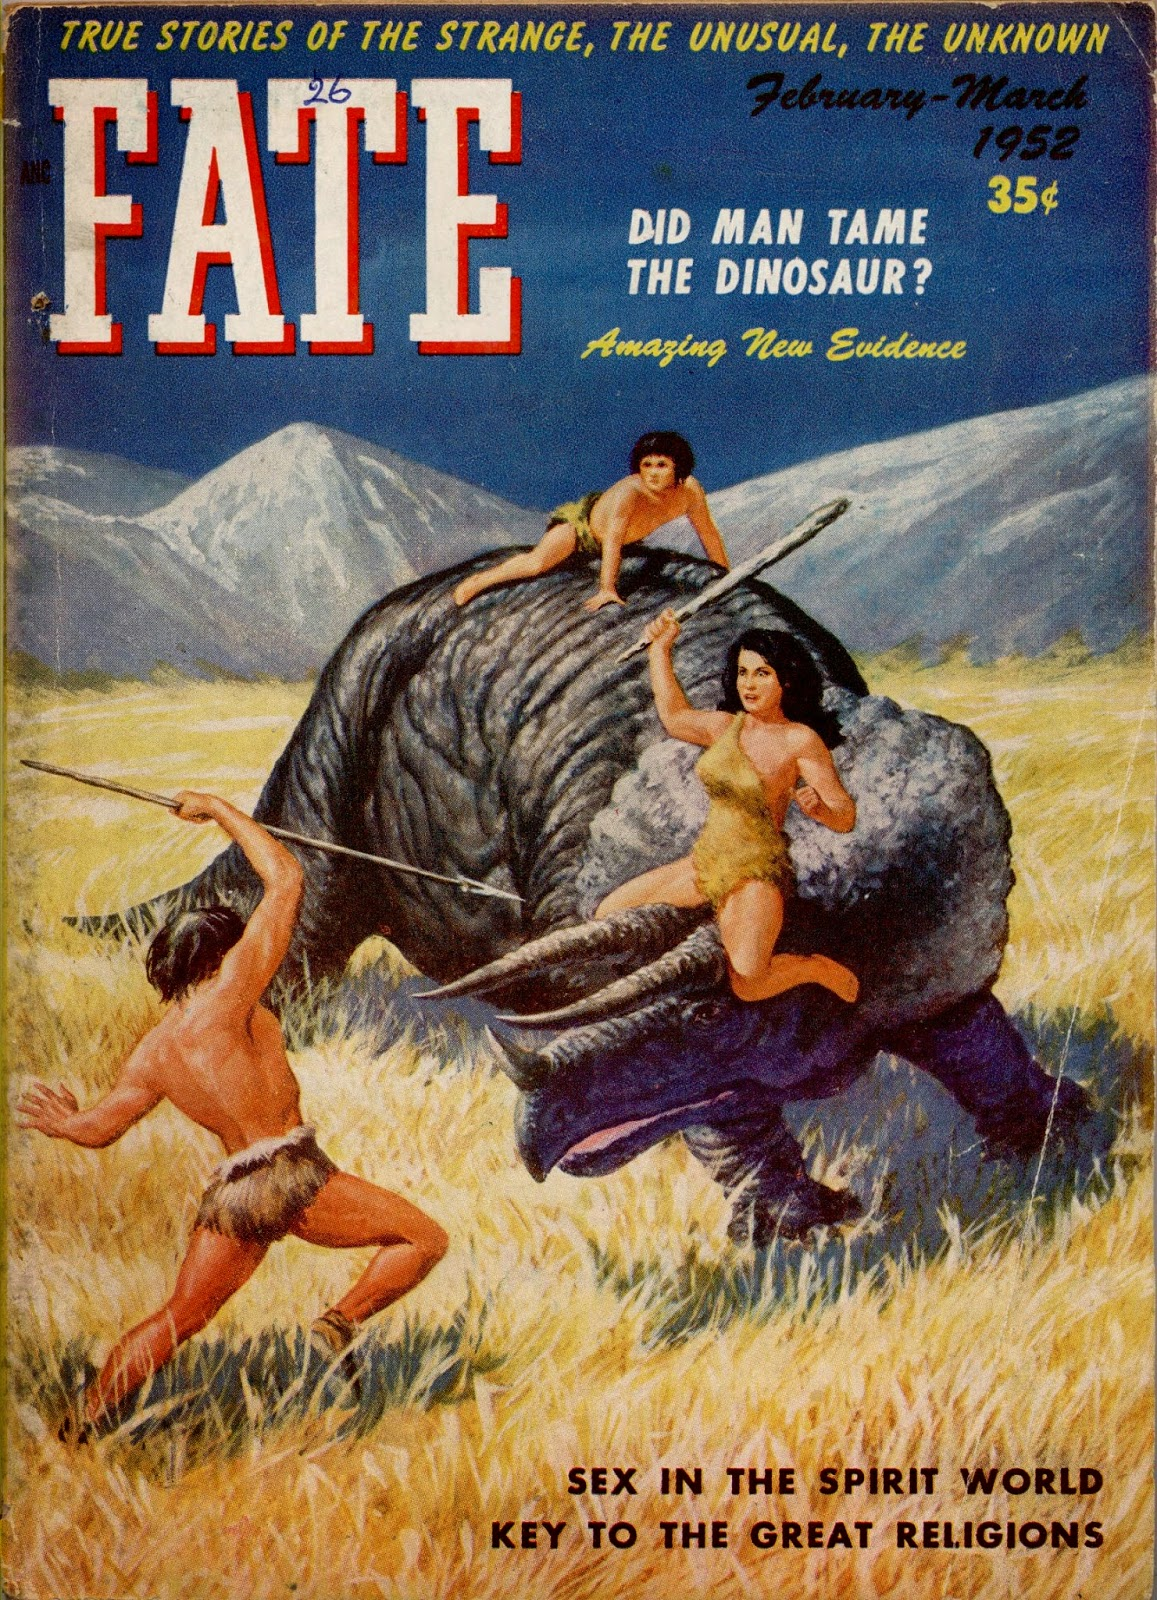 http://pulpcovers.com/did-man-tame-the-dinosaur/